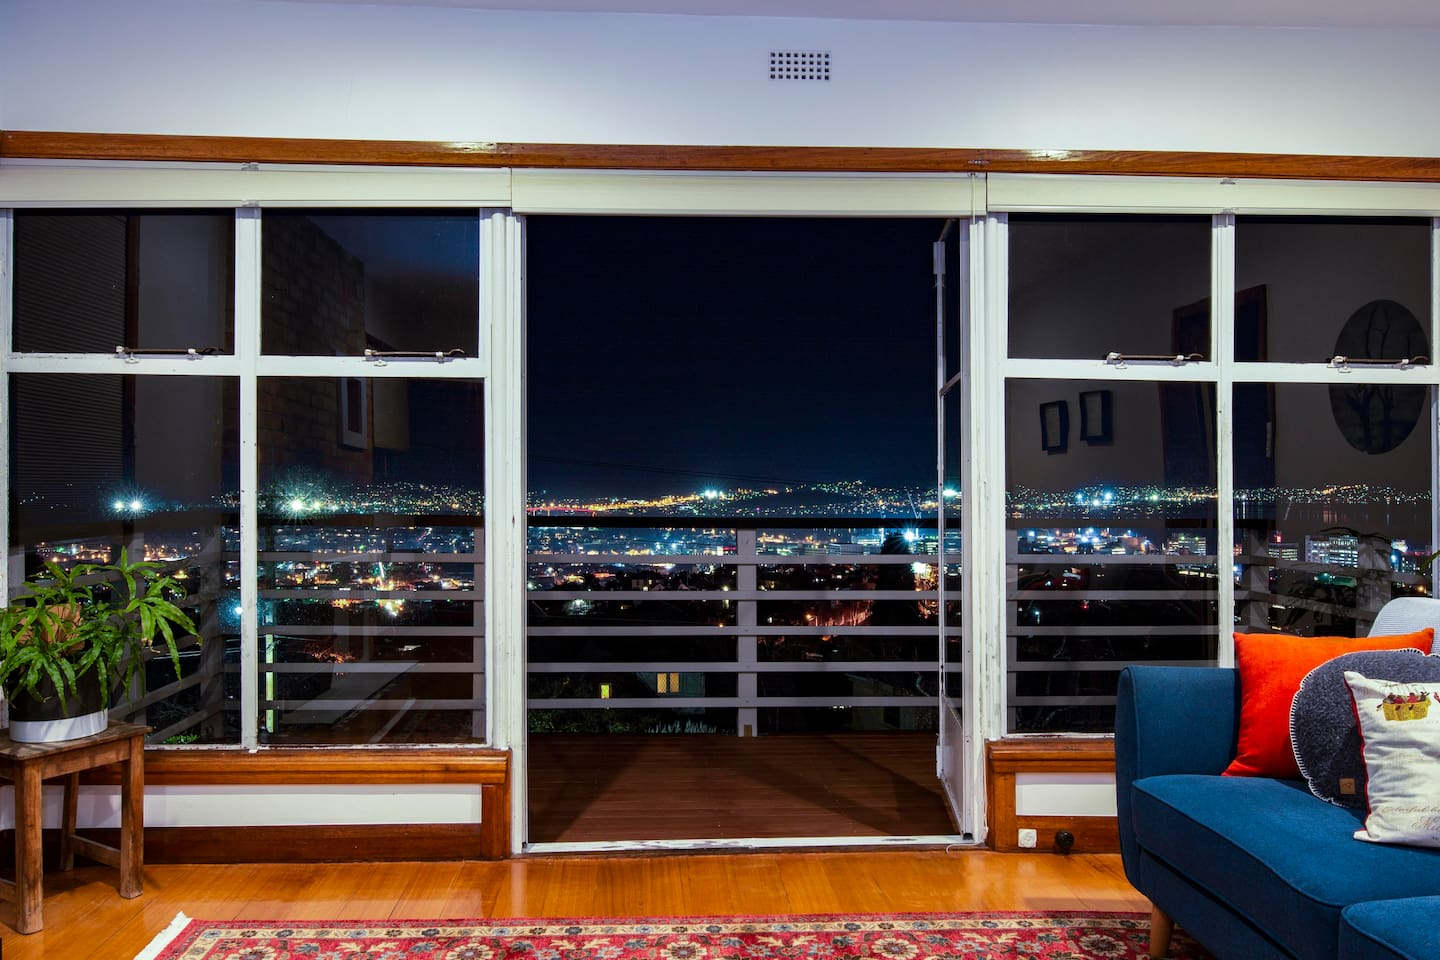 Stunning views over the city of Hobart from the living room - CBD and Derwent River